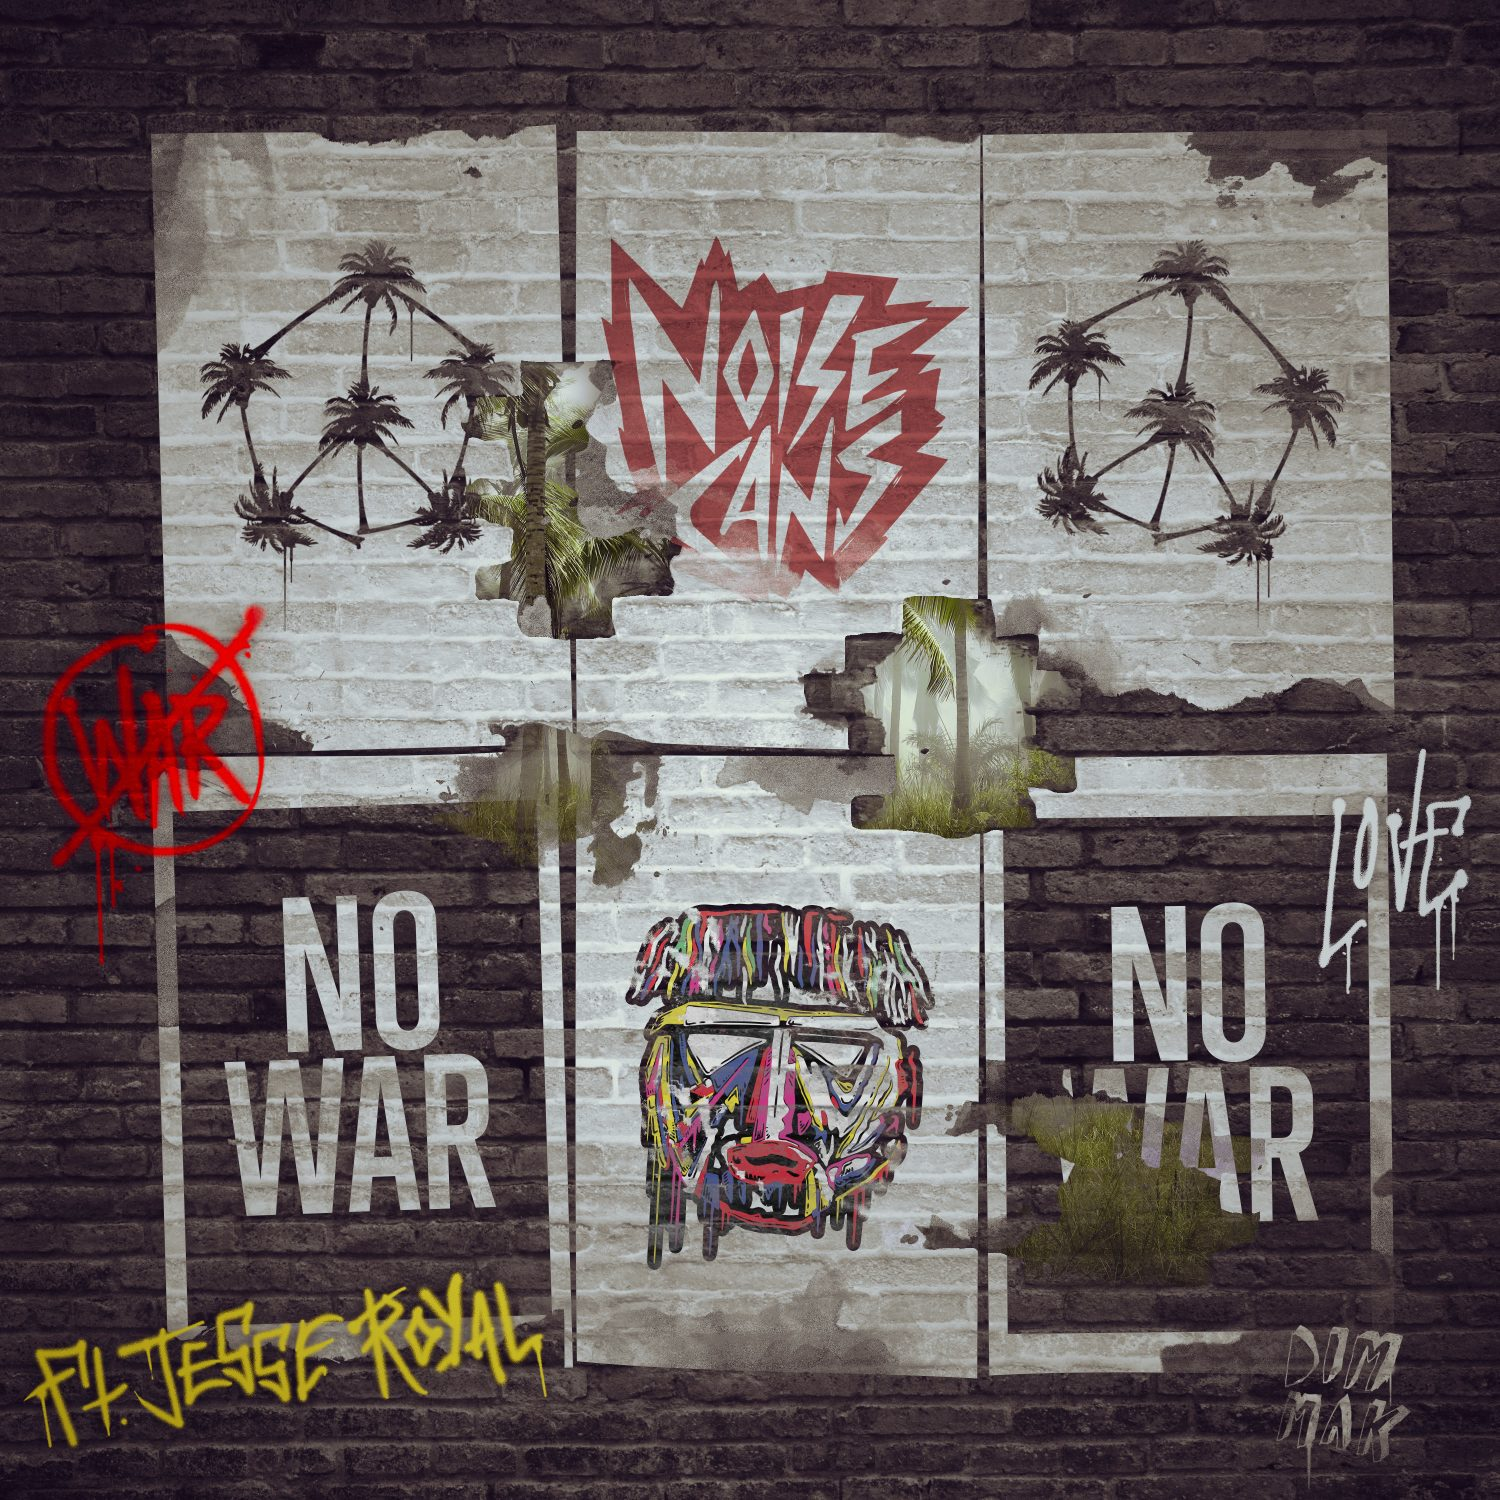 noise-cans-no-war-jesse-royal-dim-mak